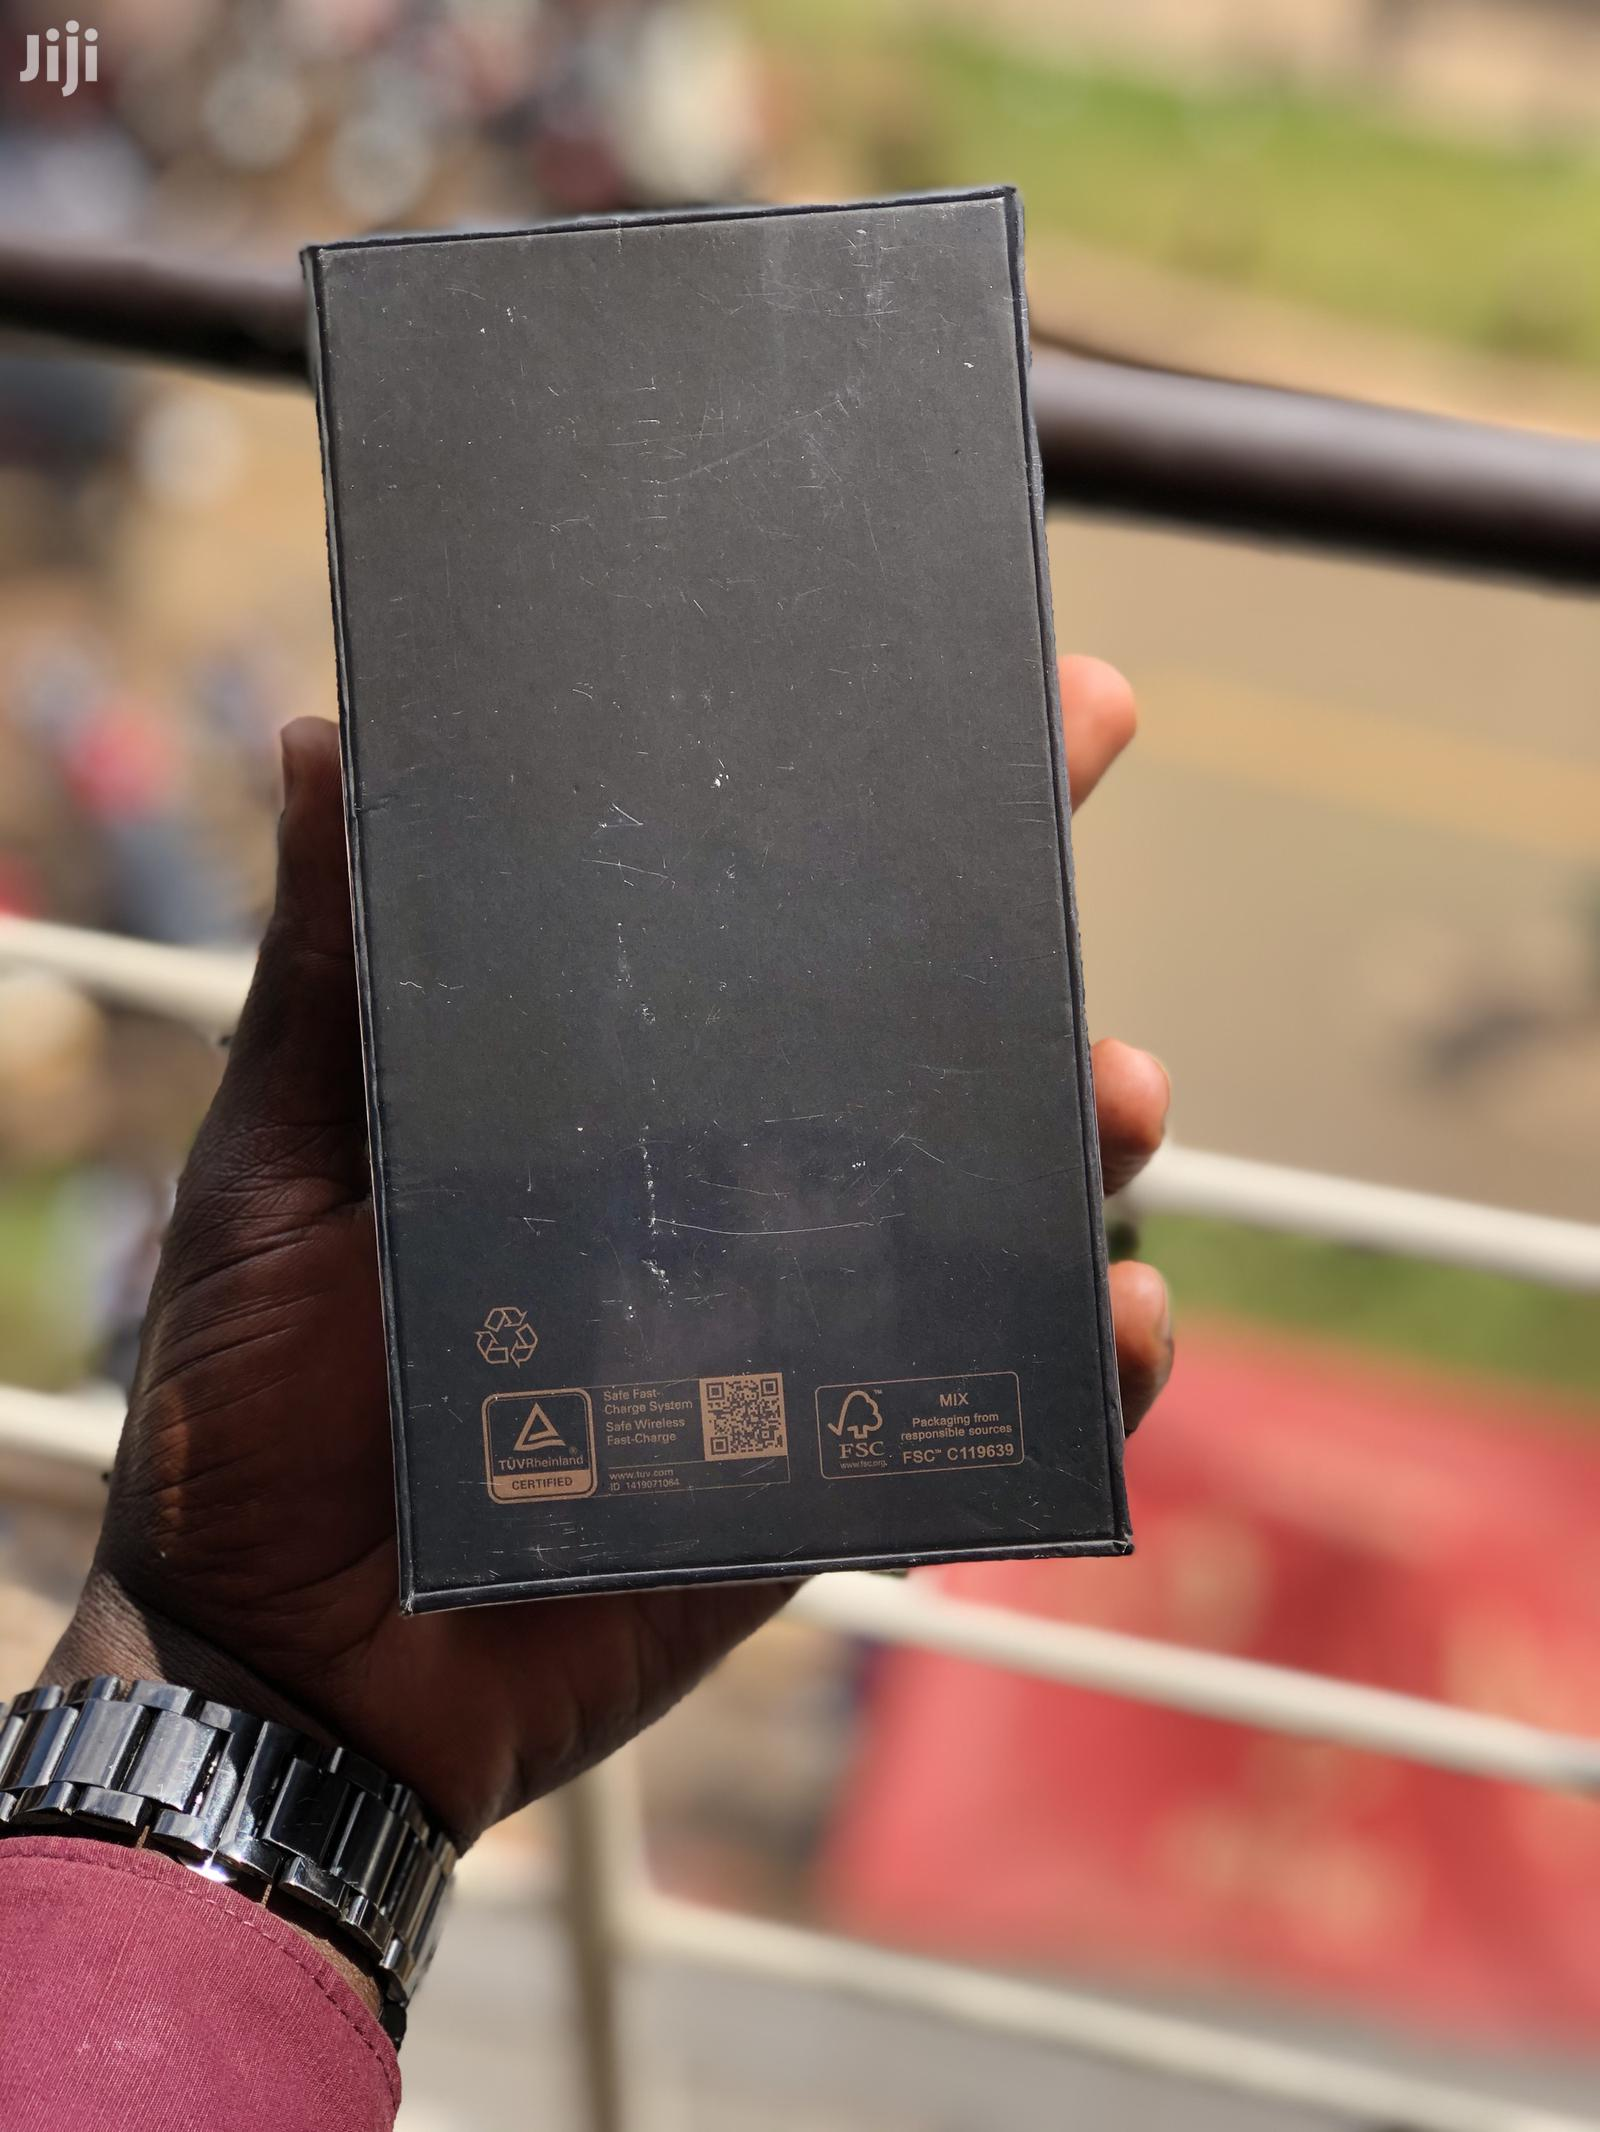 New Huawei Mate 30 Pro 256 GB Black | Mobile Phones for sale in Kampala, Central Region, Uganda